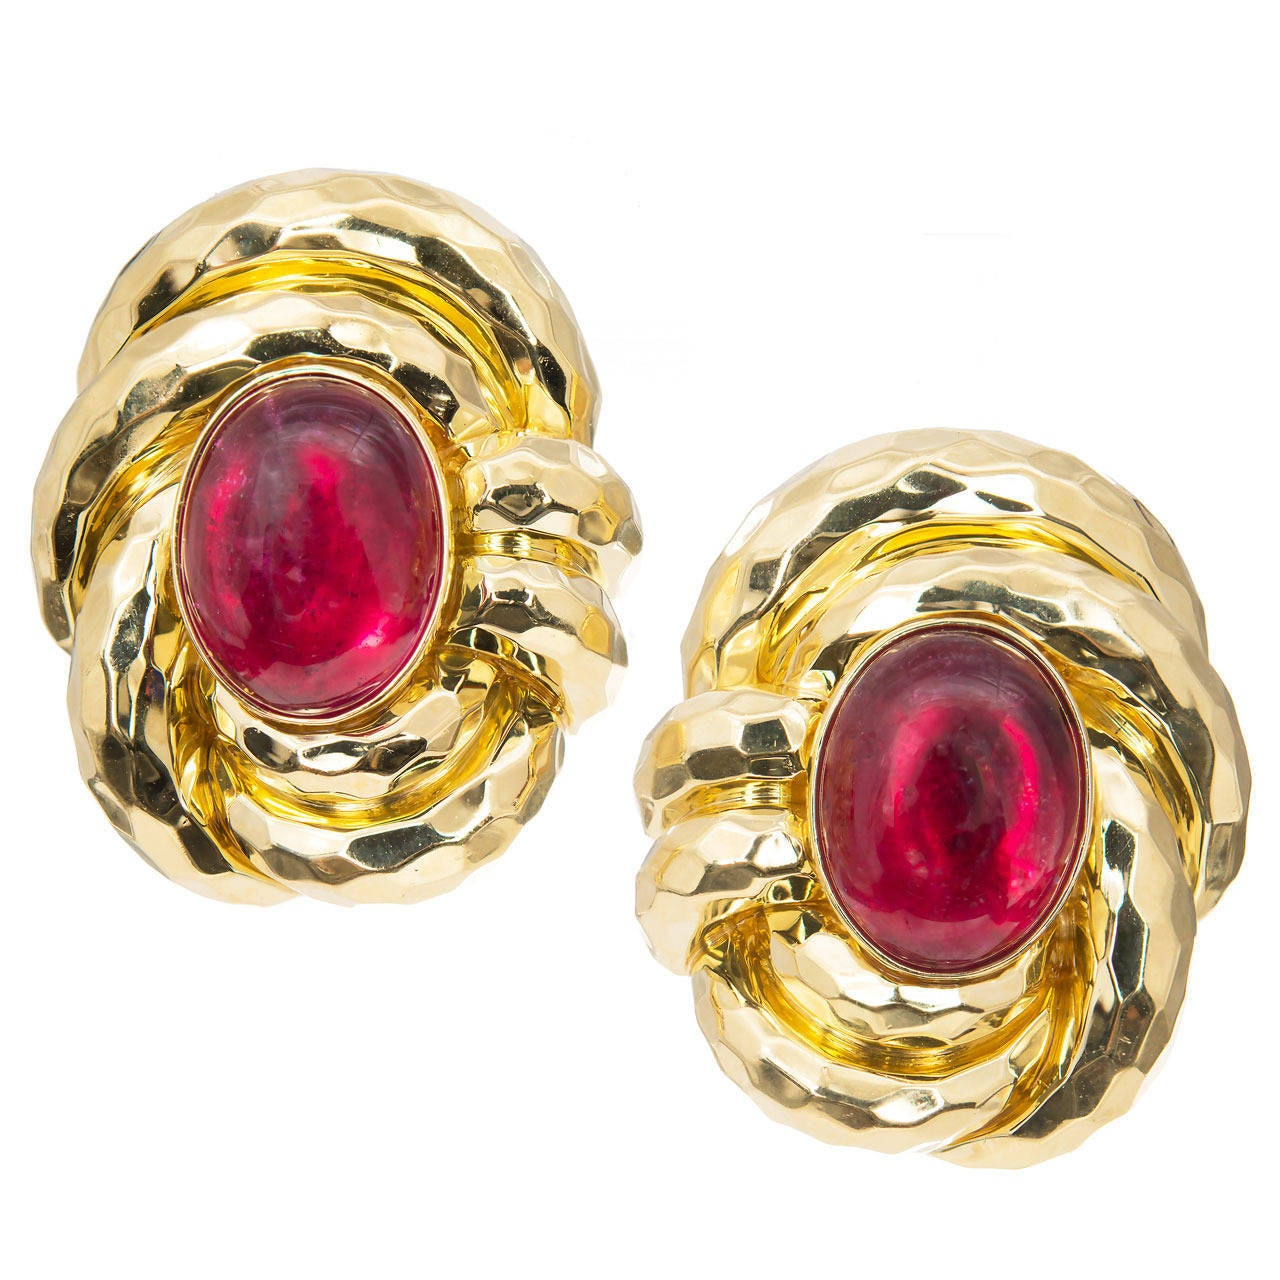 Henry Dunay Pink Tourmaline Rubellite Hammered Gold Earrings For Sale